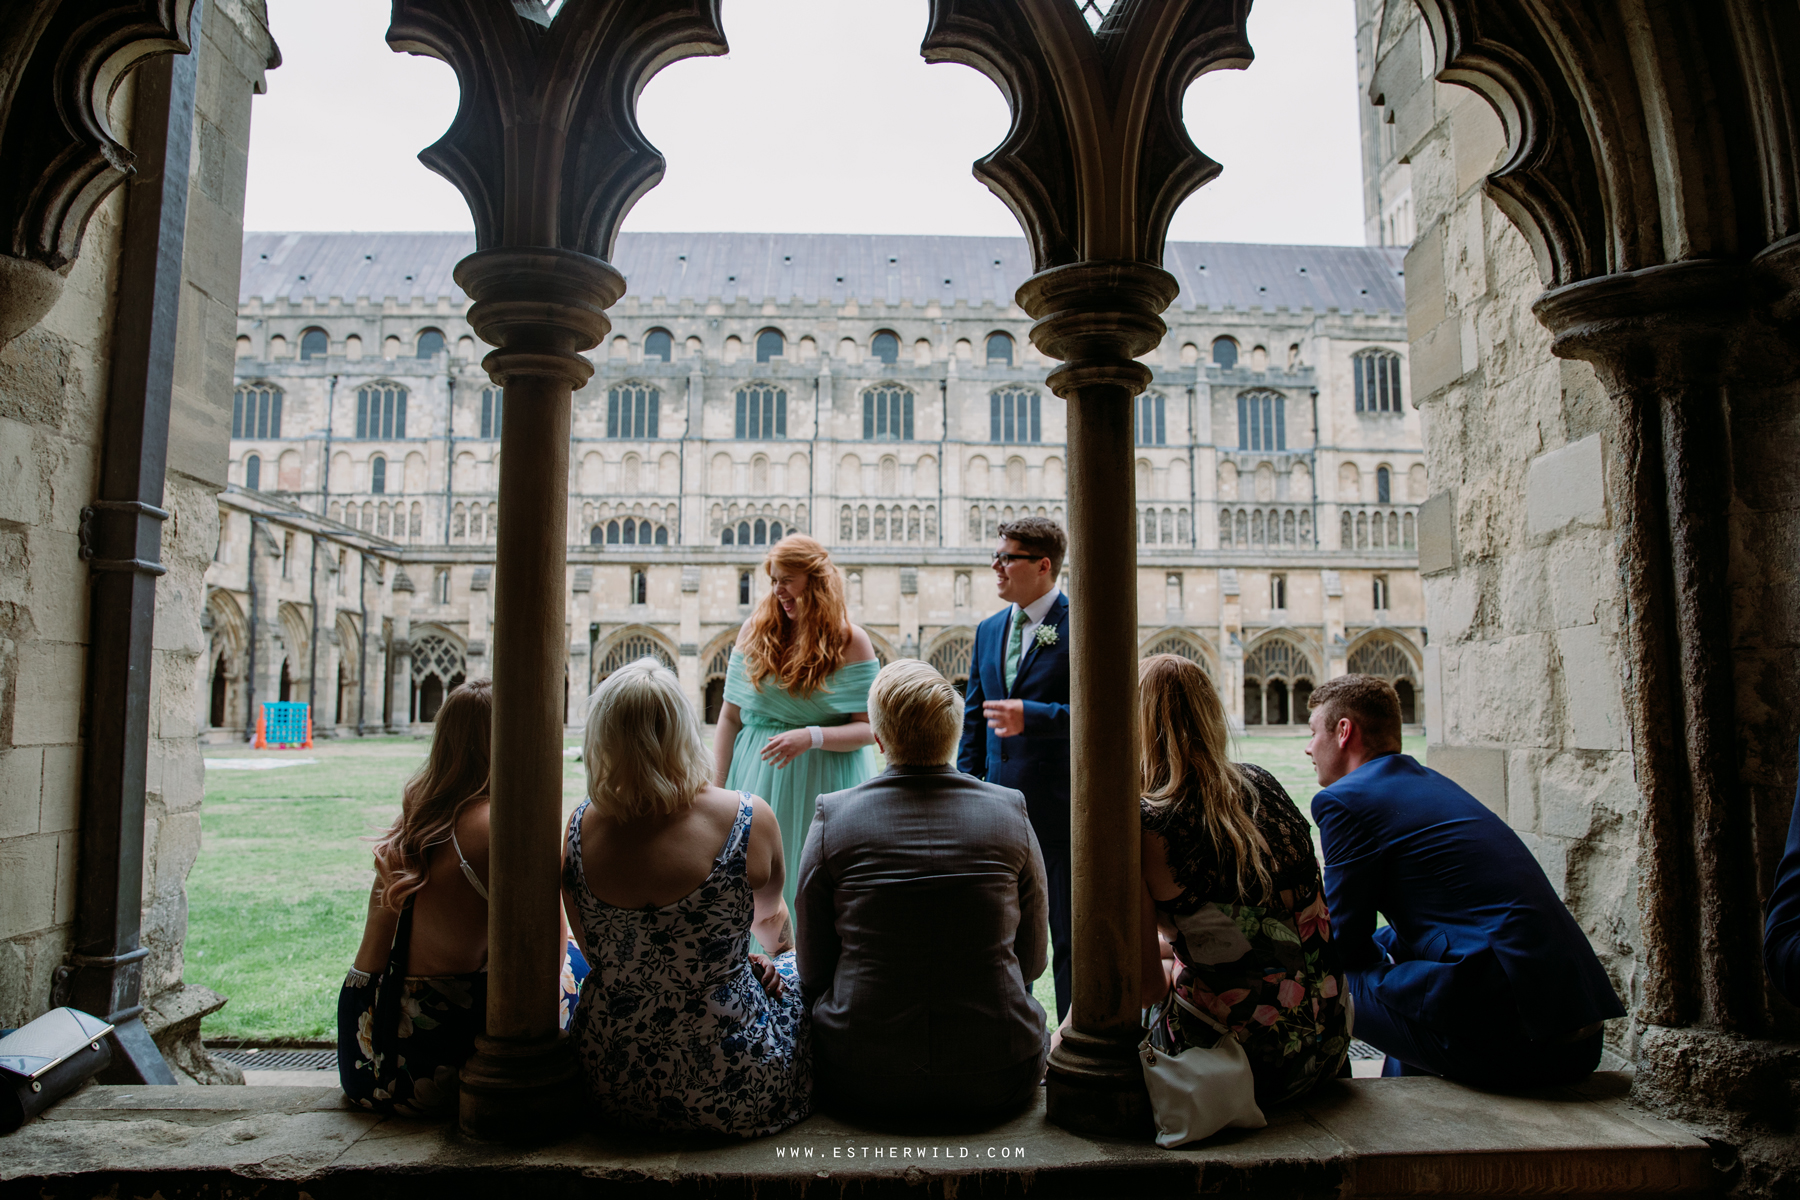 Norwich_Castle_Arcade_Grosvenor_Chip_Birdcage_Cathedral_Cloisters_Refectory_Wedding_Photography_Esther_Wild_Photographer_Norfolk_Kings_Lynn_3R8A2122.jpg